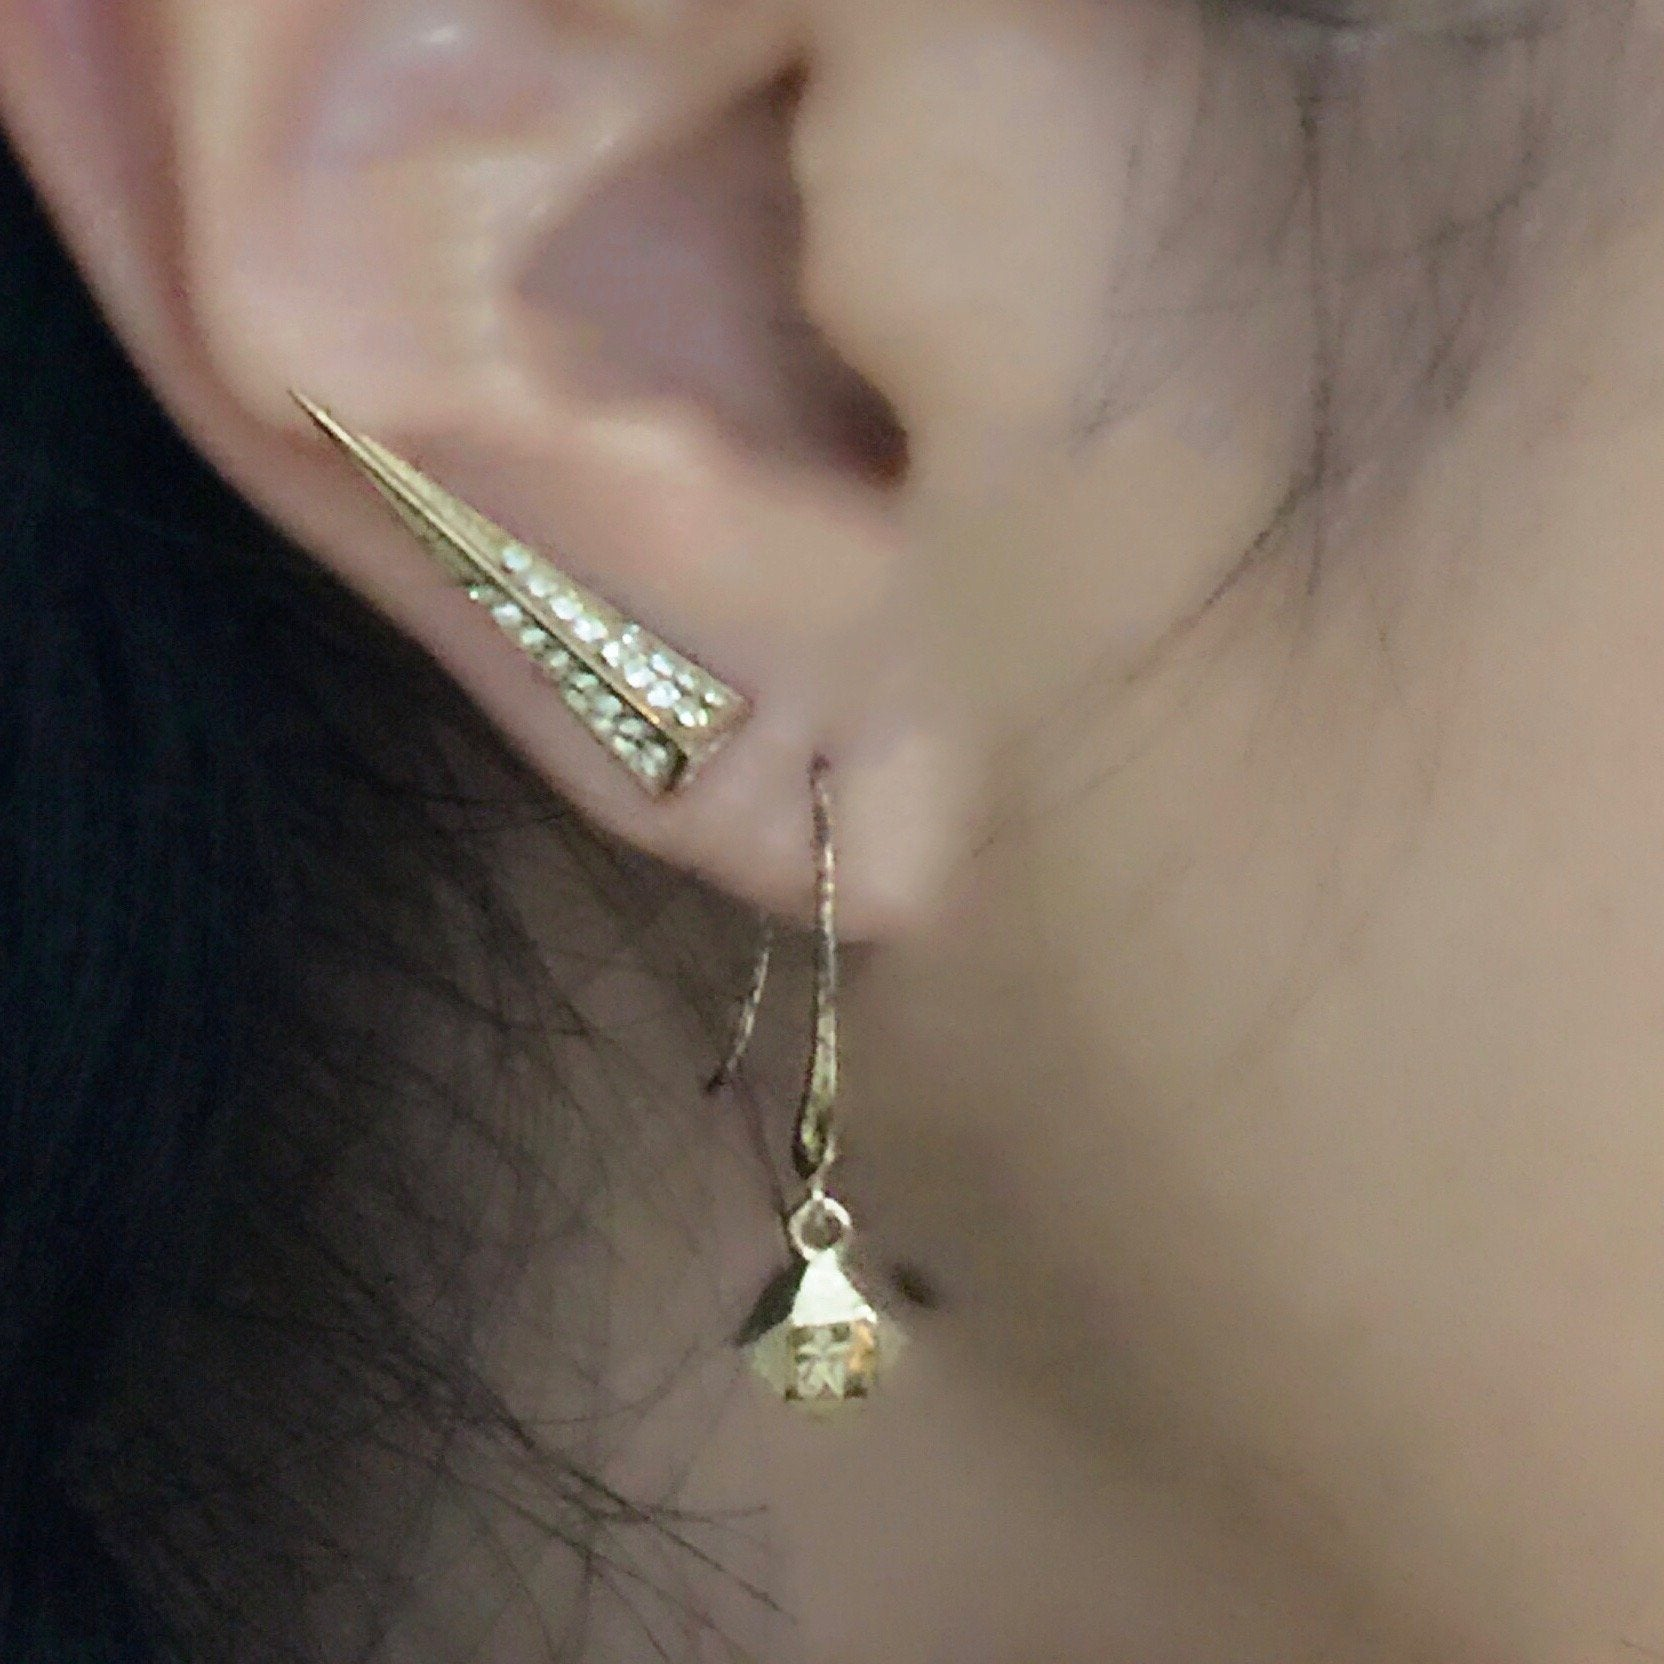 Woman wearing Mantra Dagger Earrings and Mantra Cube Earrings - Engraved